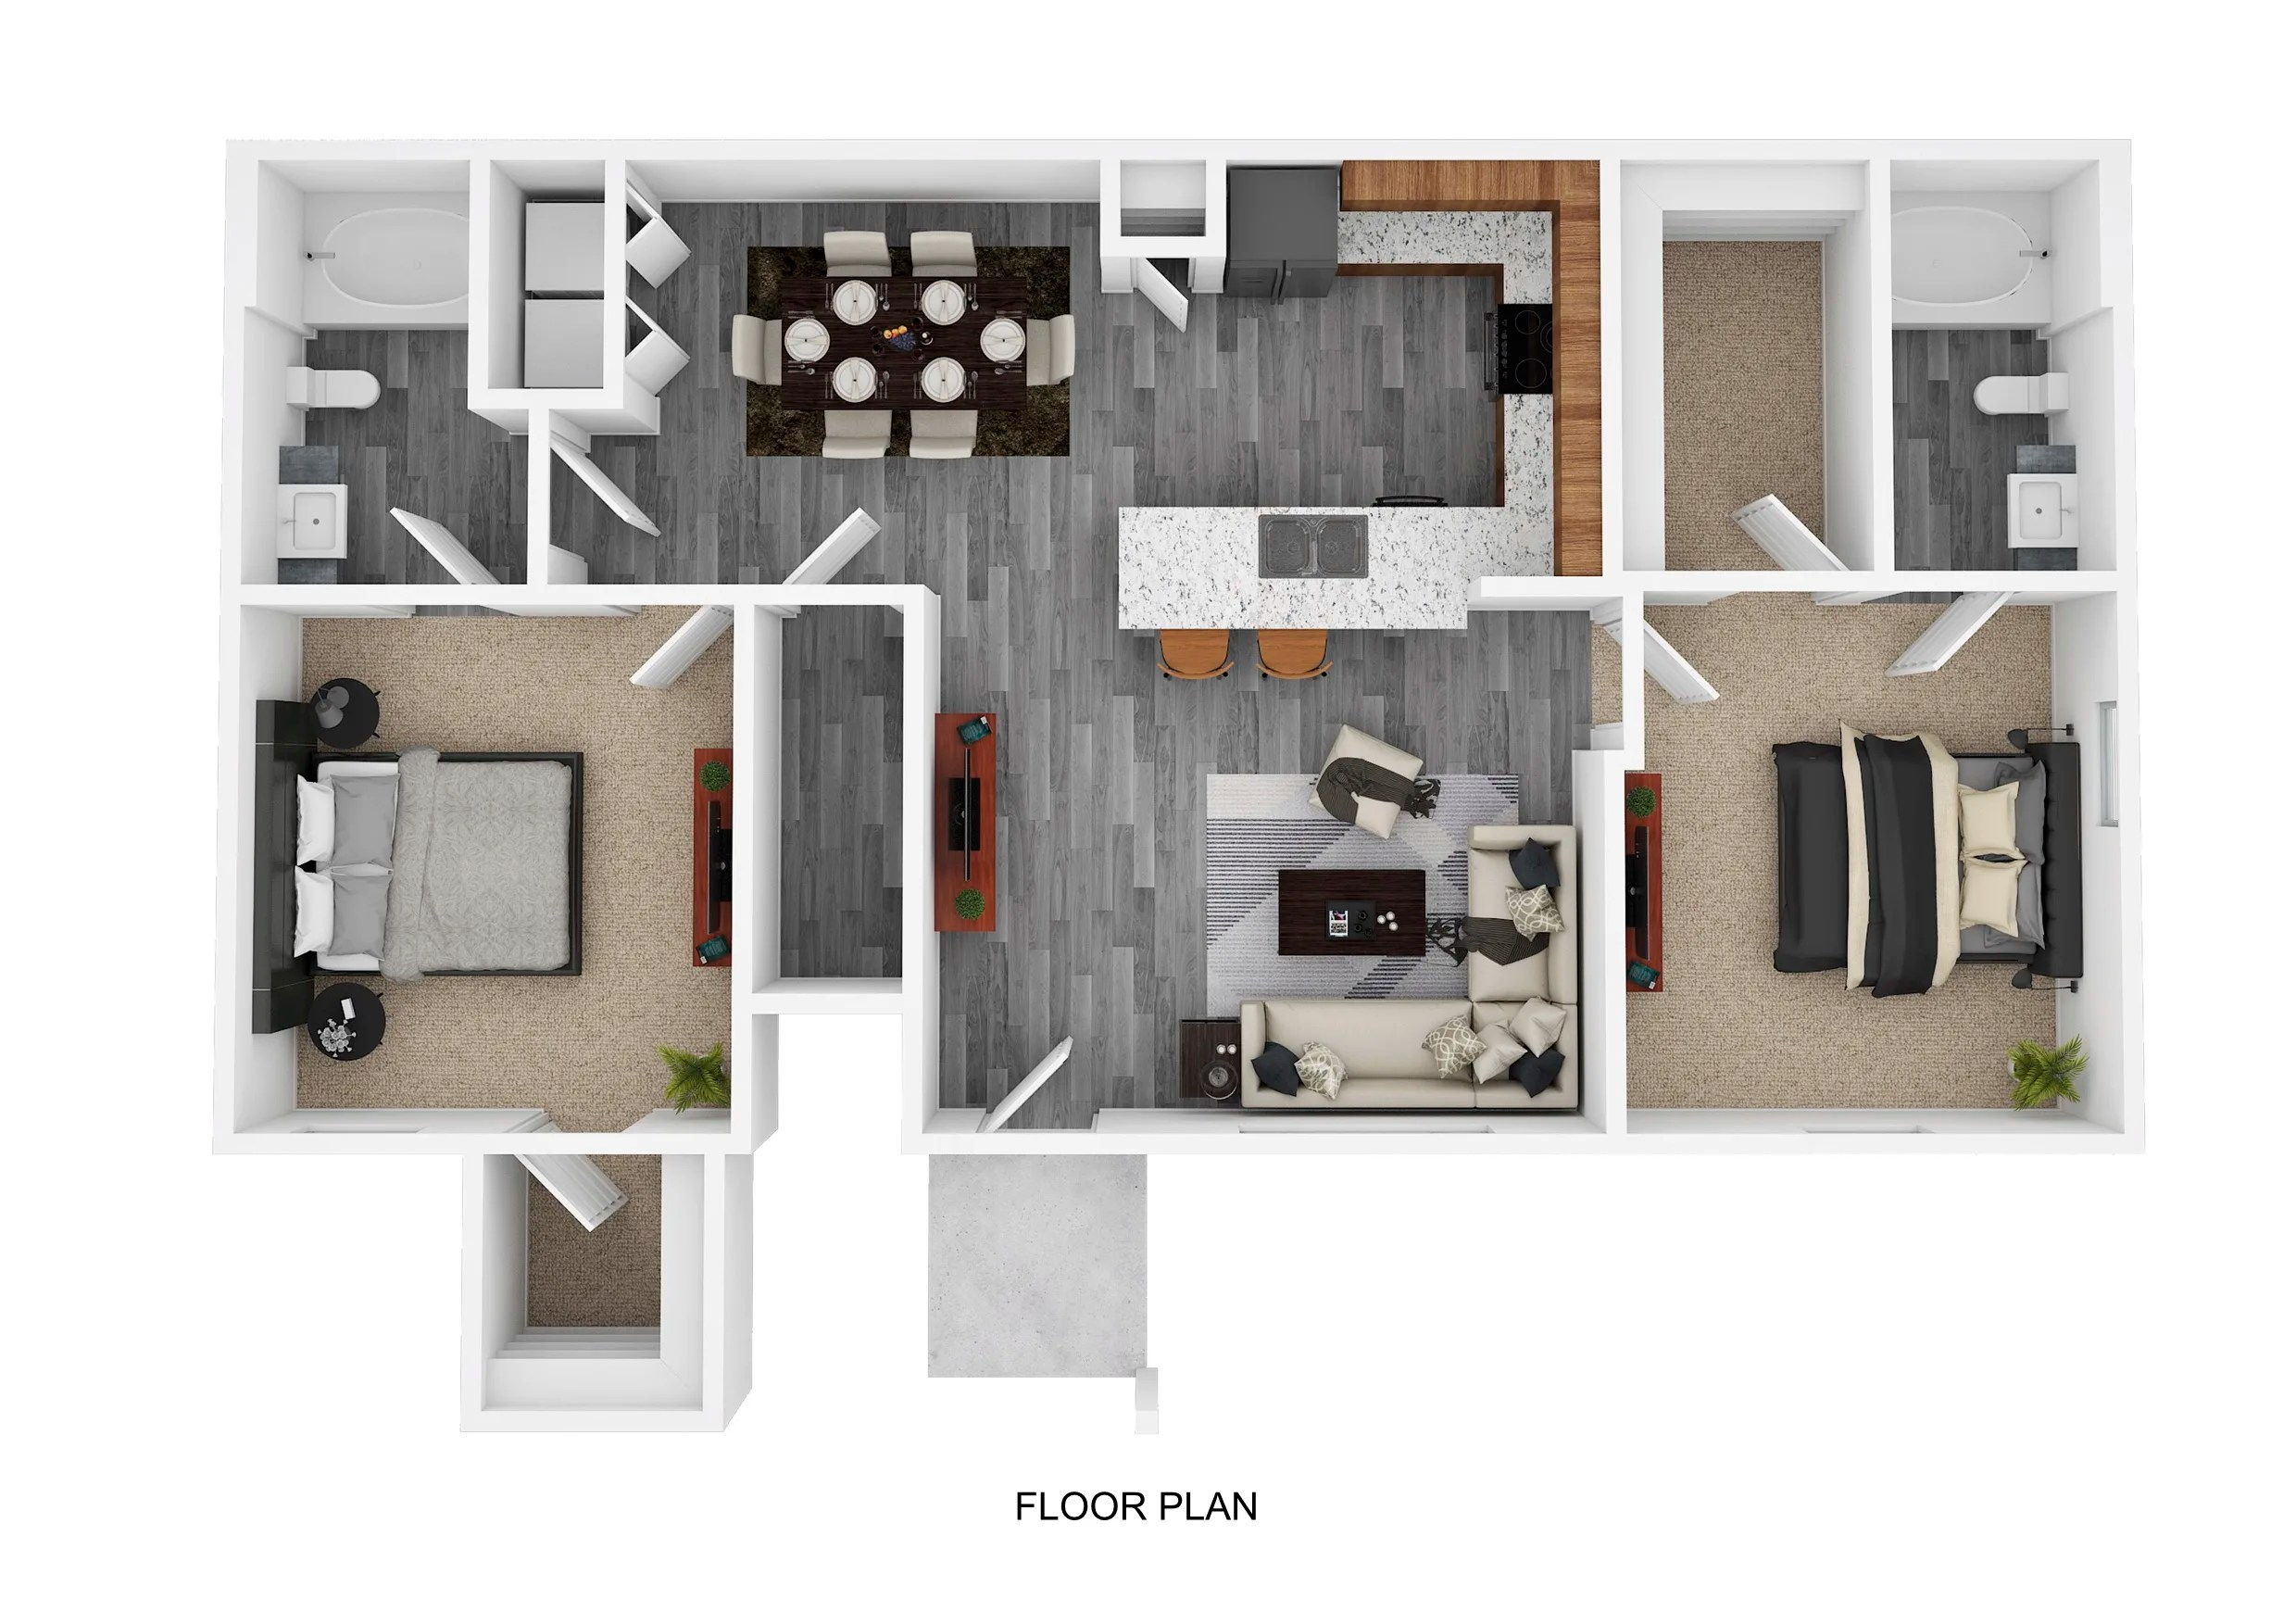 1 2 3 Bedroom Apartments In Pflugerville Tx The Emerson Apartments